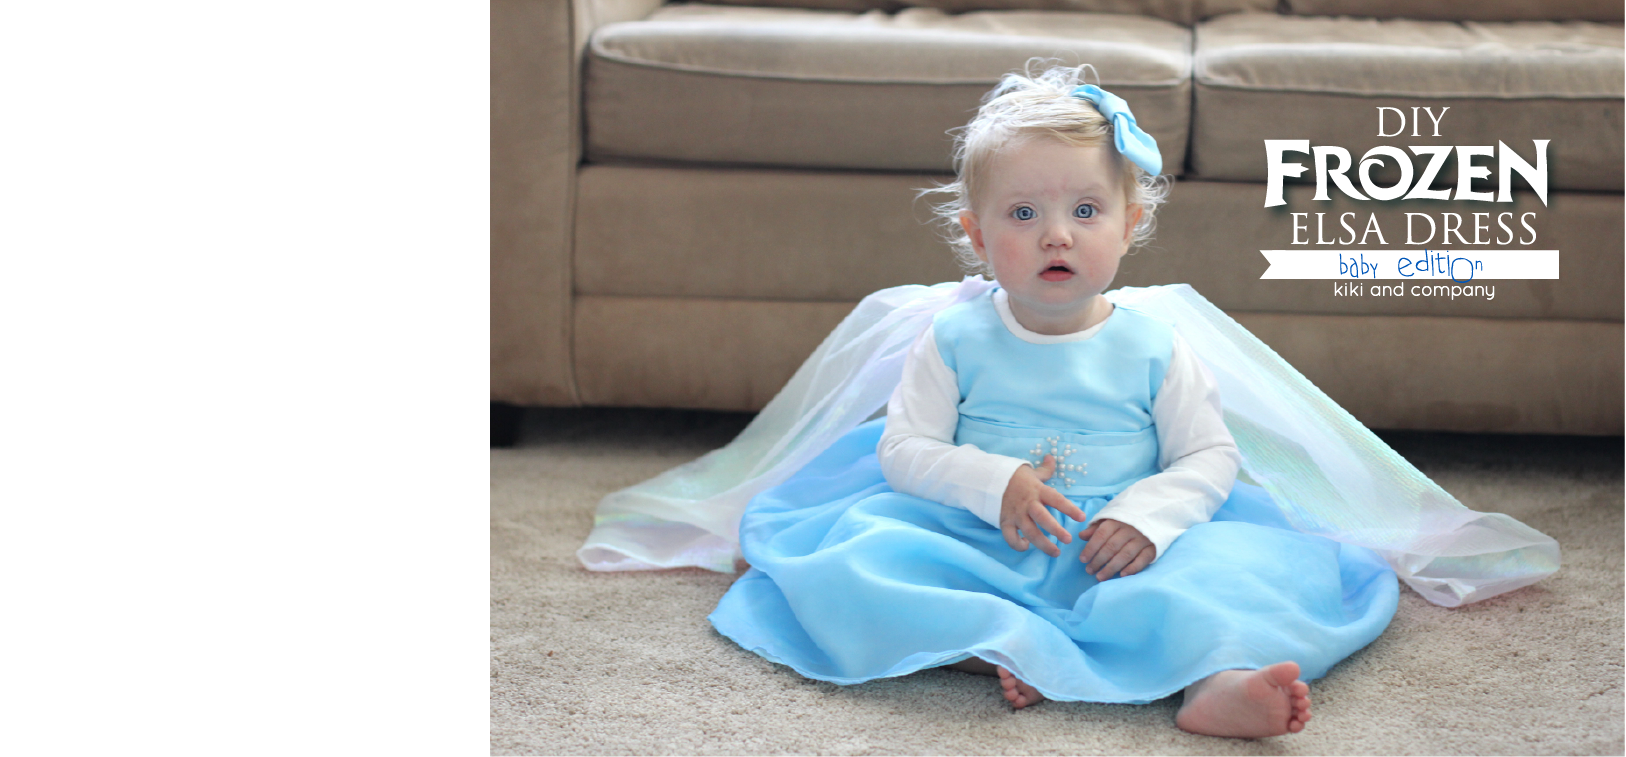 Along ...  sc 1 st  Kiki Comin & DIY Frozen Elsa Dress BABY Edition free tutorial - Kiki u0026 Company